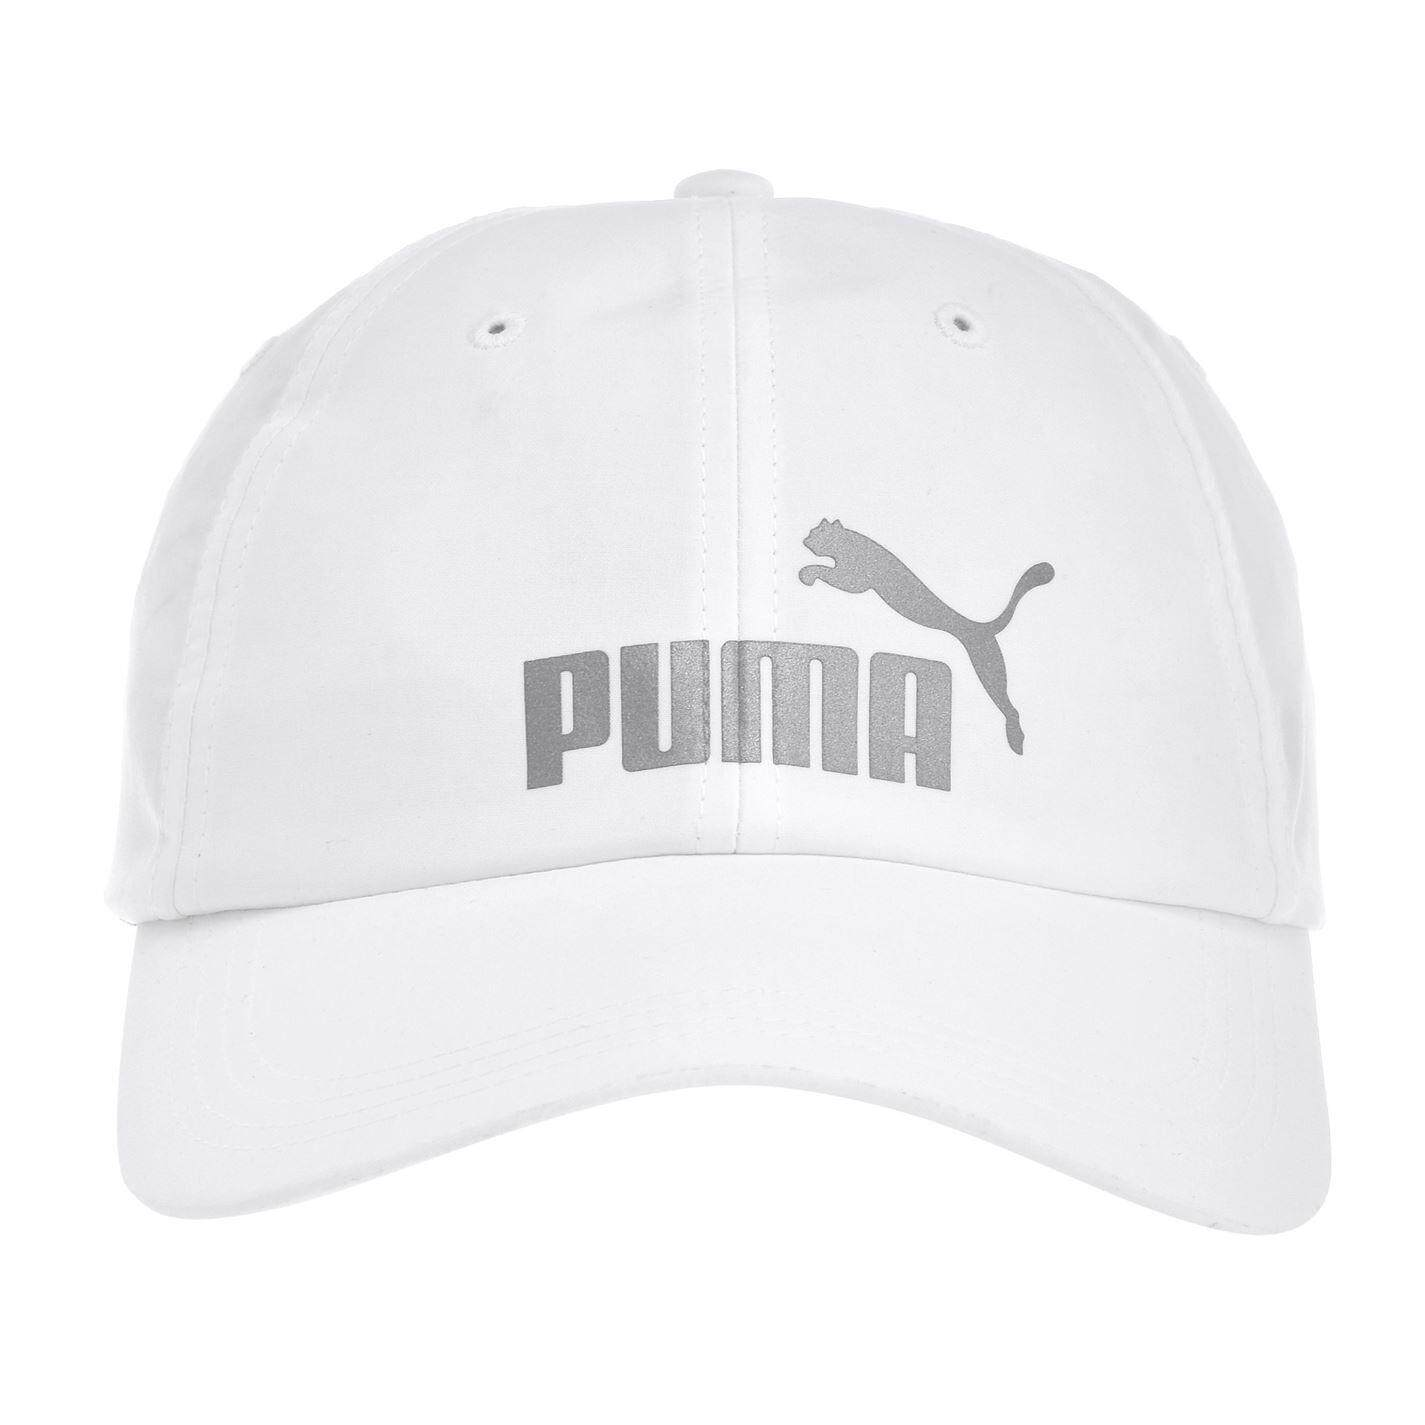 790045f0e Puma Products With Best Online Price At Lazada Malaysia